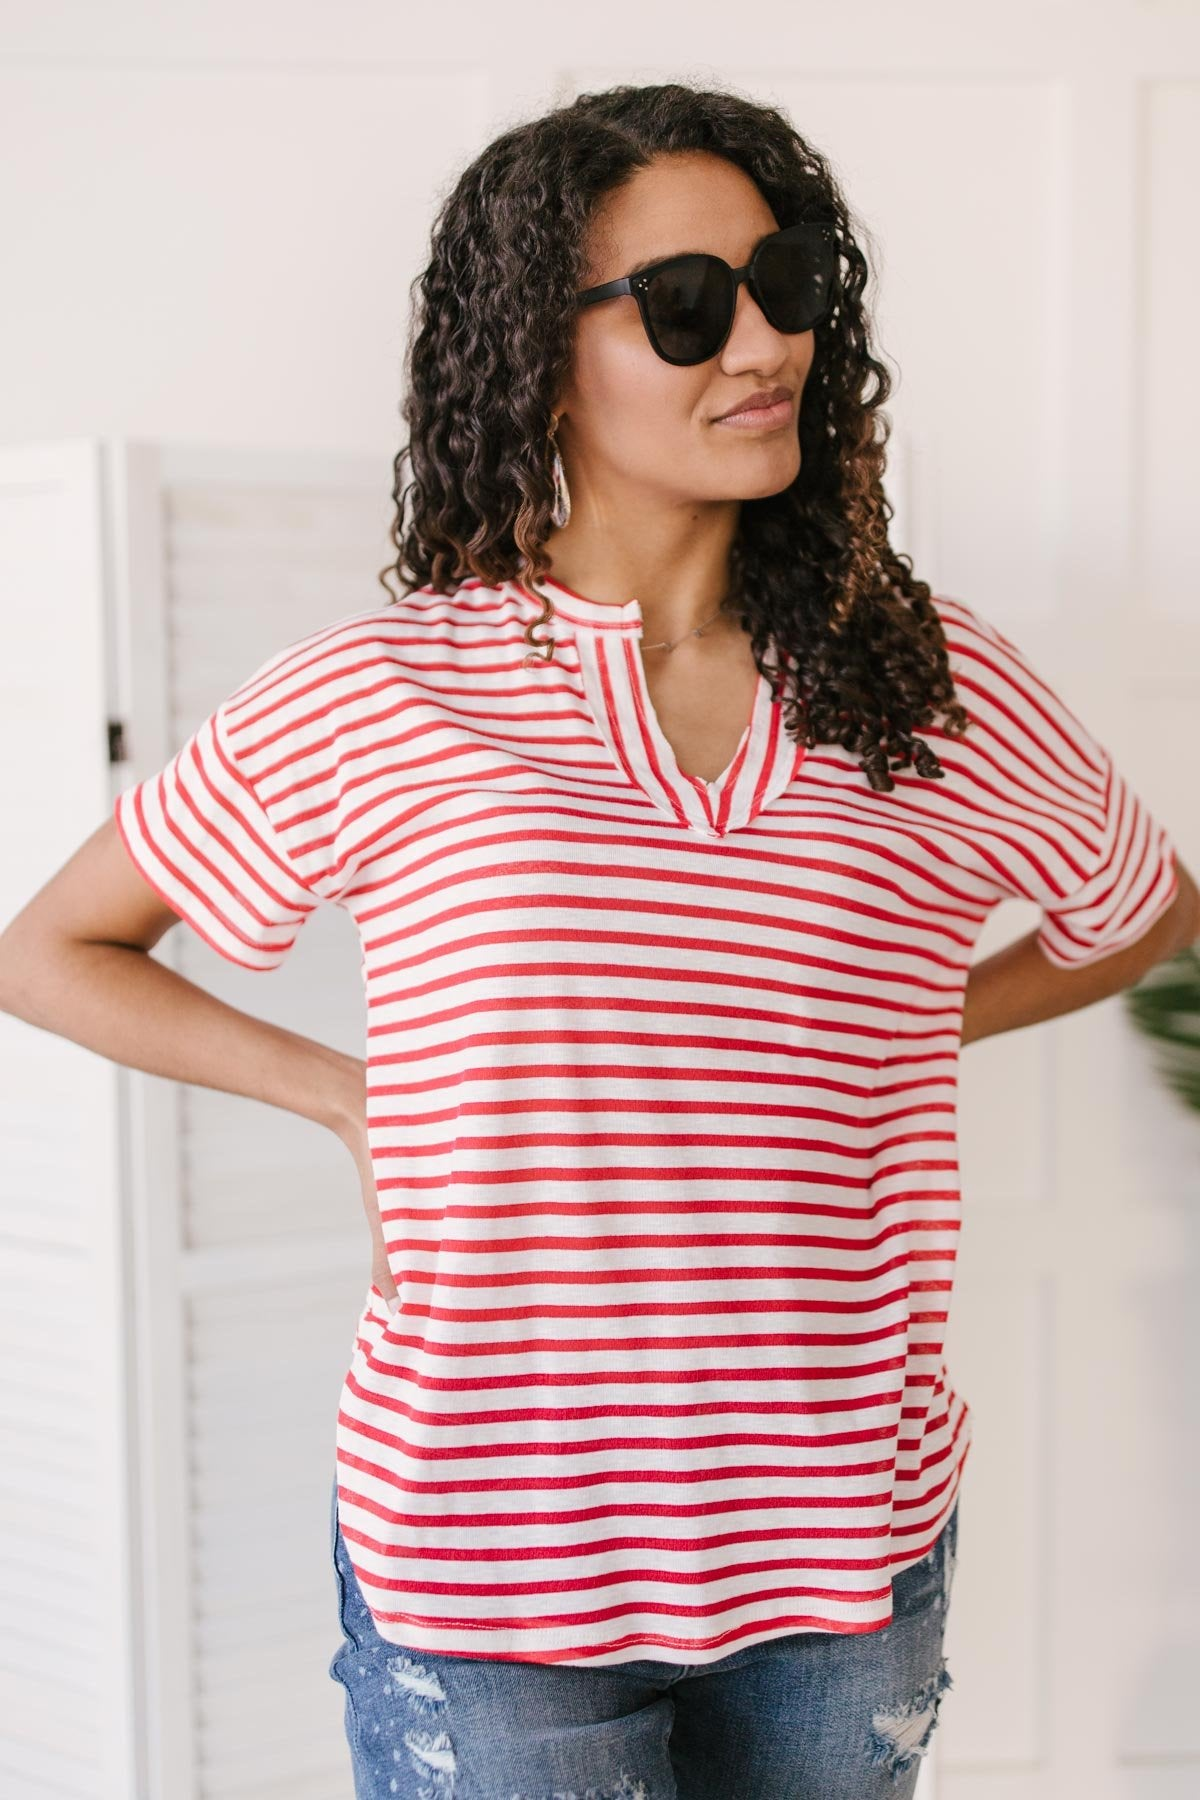 One and Only Stripes Top in Red-Ave Shops-Avis Lane Boutique-Justin, Texas